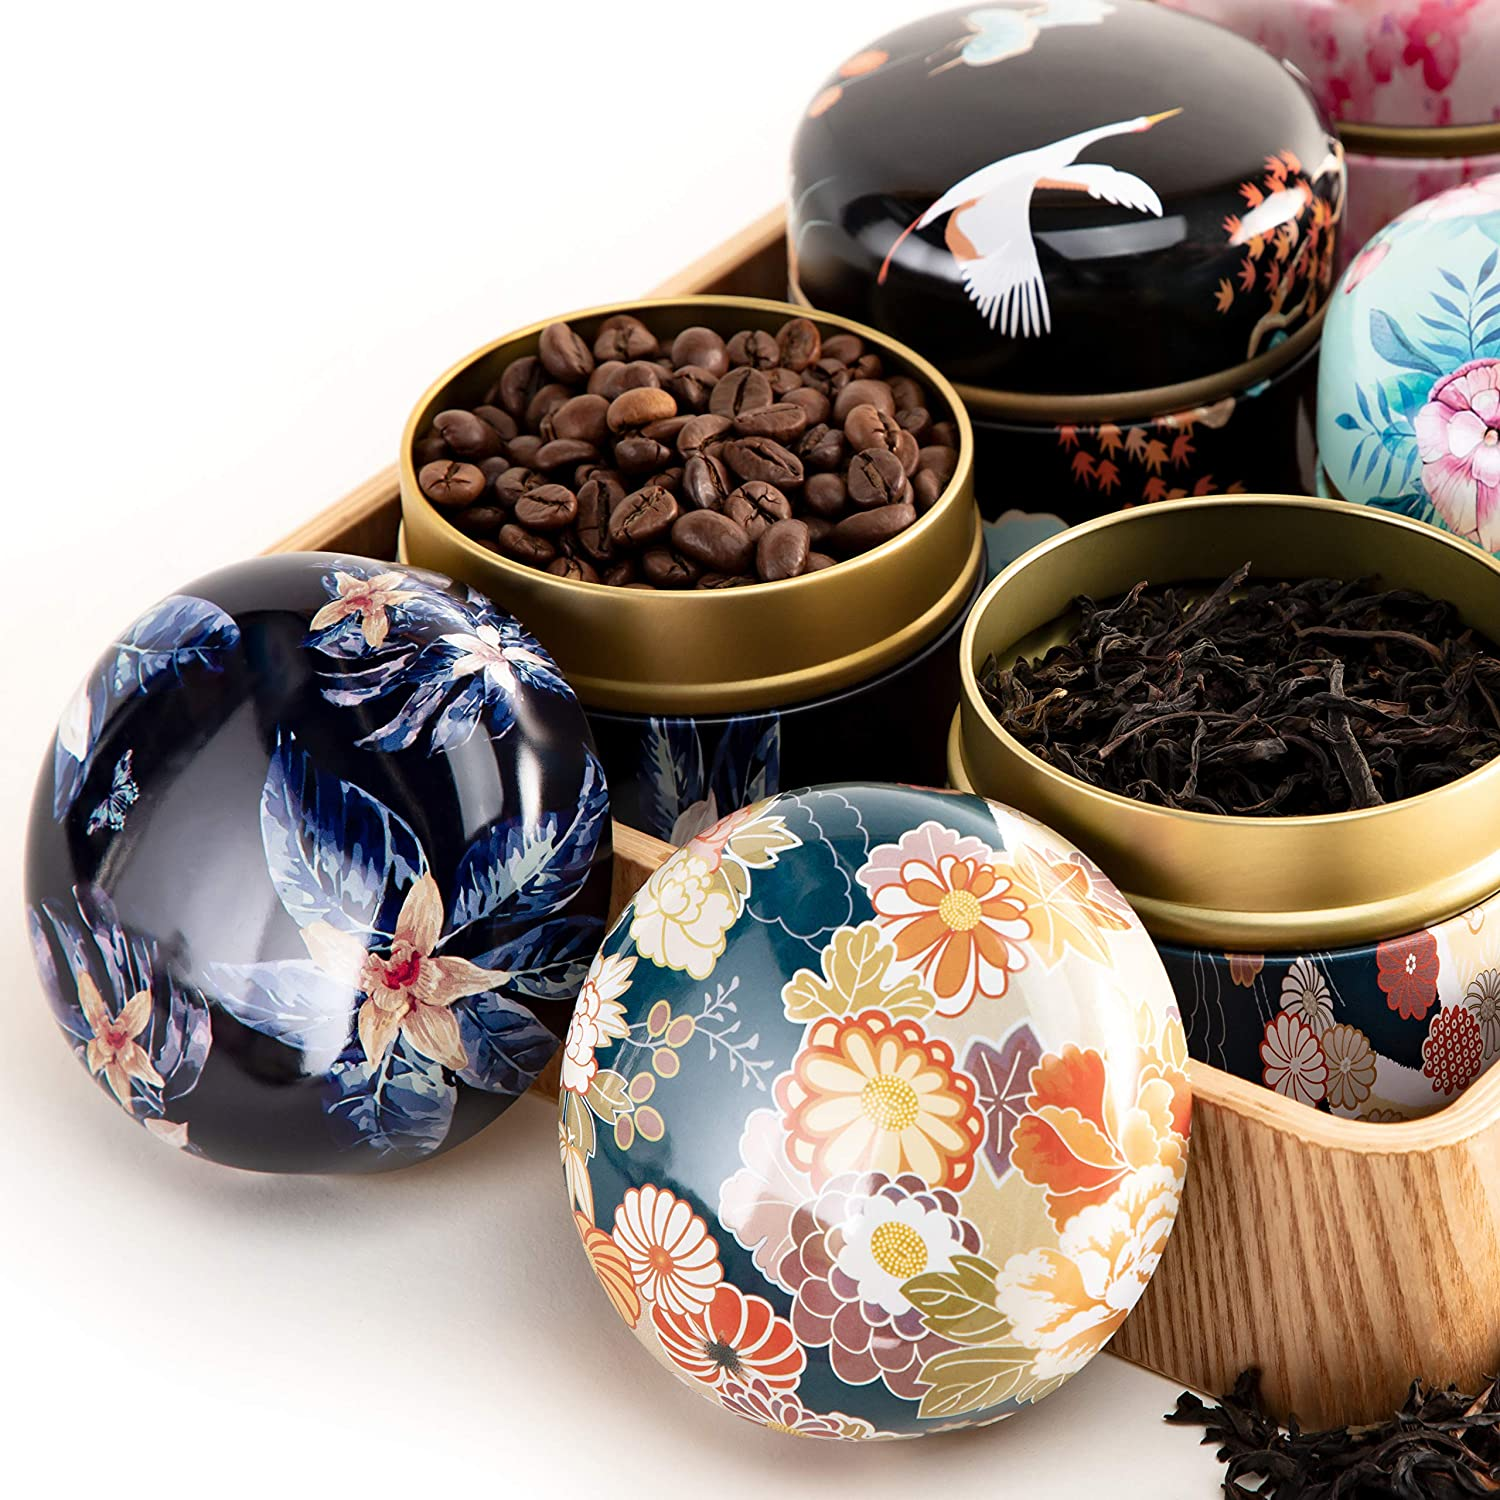 Mini Tea Storage Container Tea tins WEMEGA Tea coffee Container Candy Chocolate Sugar Spices Herbs and Spices Perfect For Keeping Dry and Storing Loose Tea Leaves 8pack